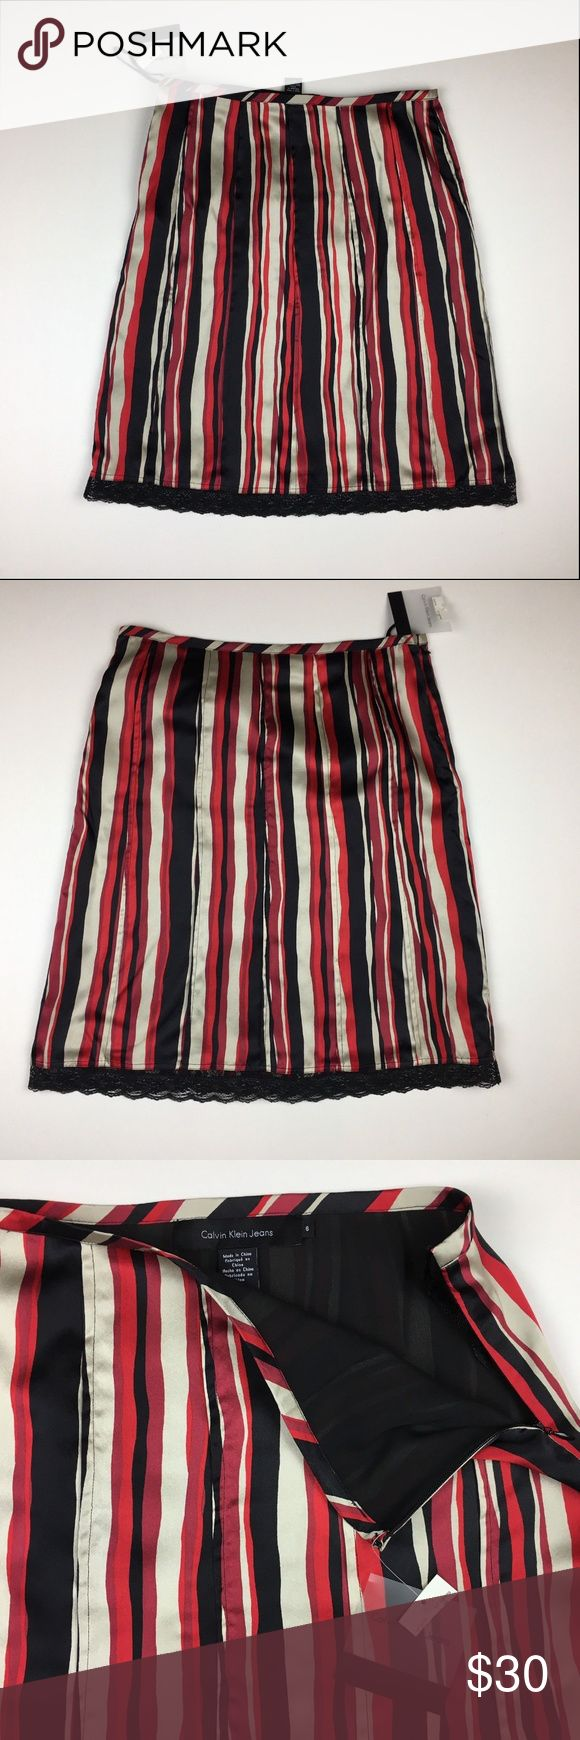 Calvin Klein Sz 6 Silk Red Striped Lace Trim Skirt Calvin Klein Womens Sz 6 Striped 100% Silk Skirt Lace Trim Black Red NWT  Waist: 31 inches Hips: 40 inches Length: 24 inches  Fabric of shell: 100% silk Calvin Klein Skirts A-Line or Full